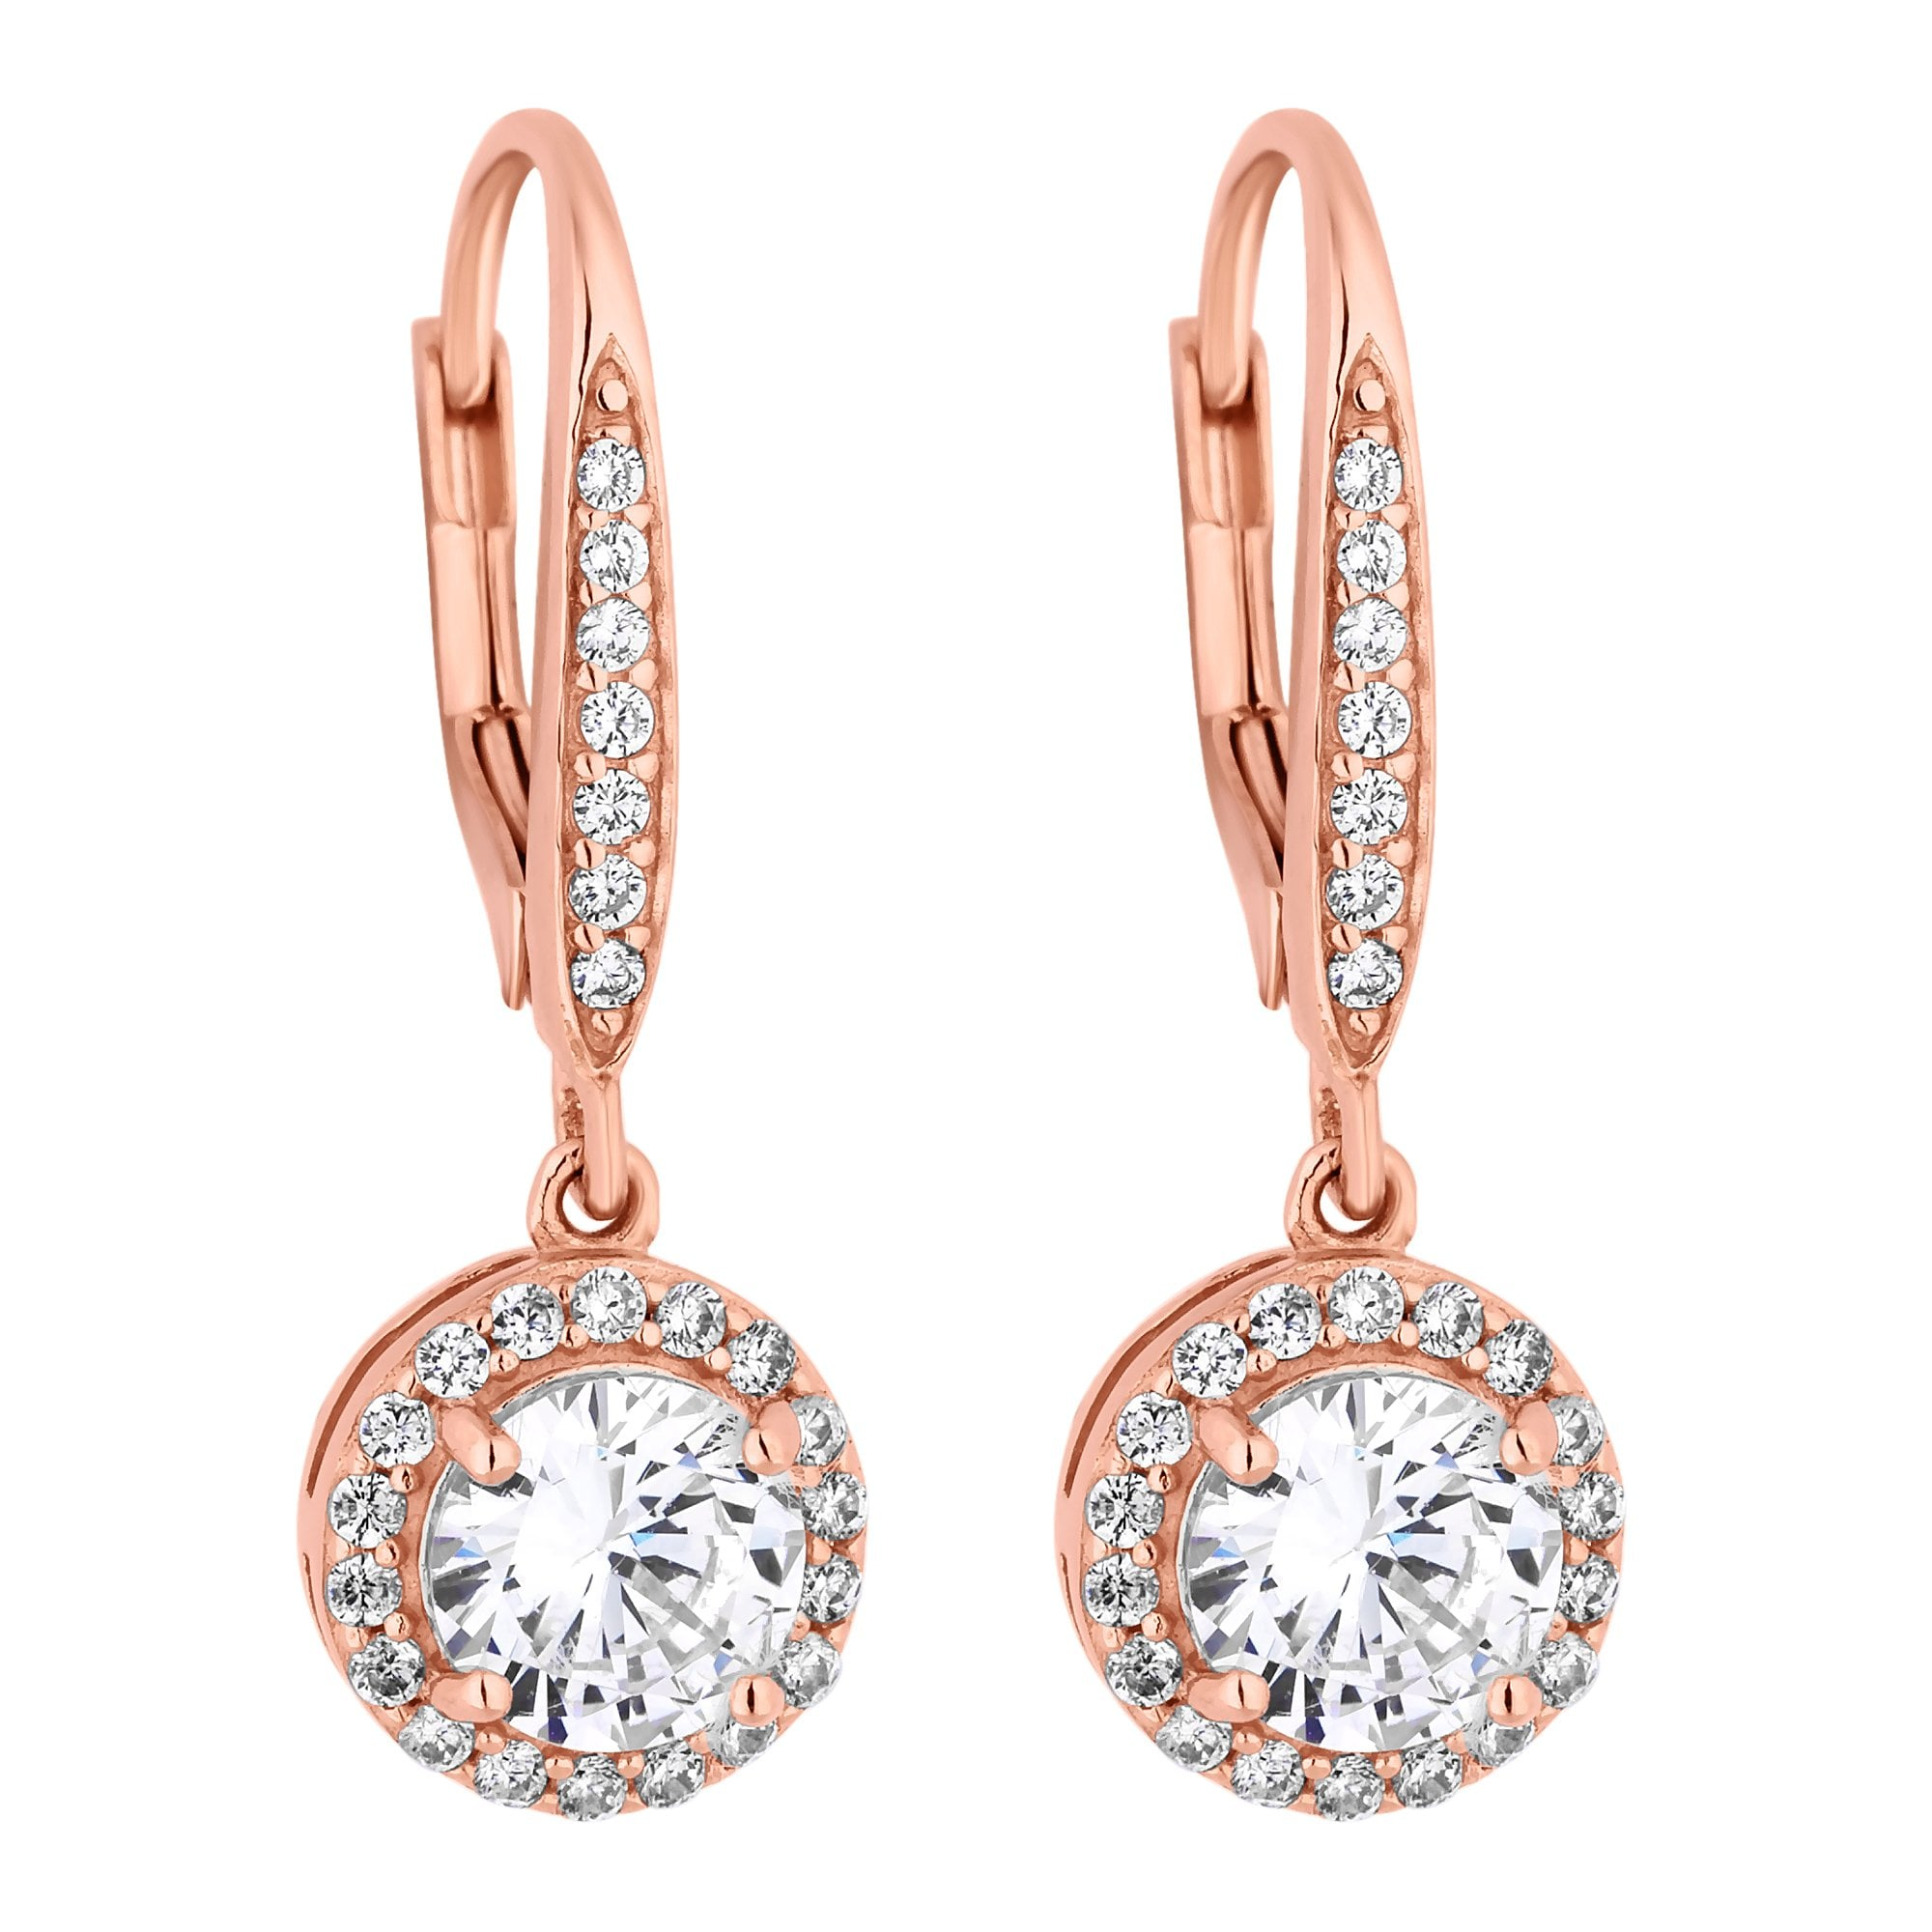 75874cafd6eda 14Ct Rose Gold Plated Sterling Silver 925 White Cubic Zirconia Clara Drop  Earring